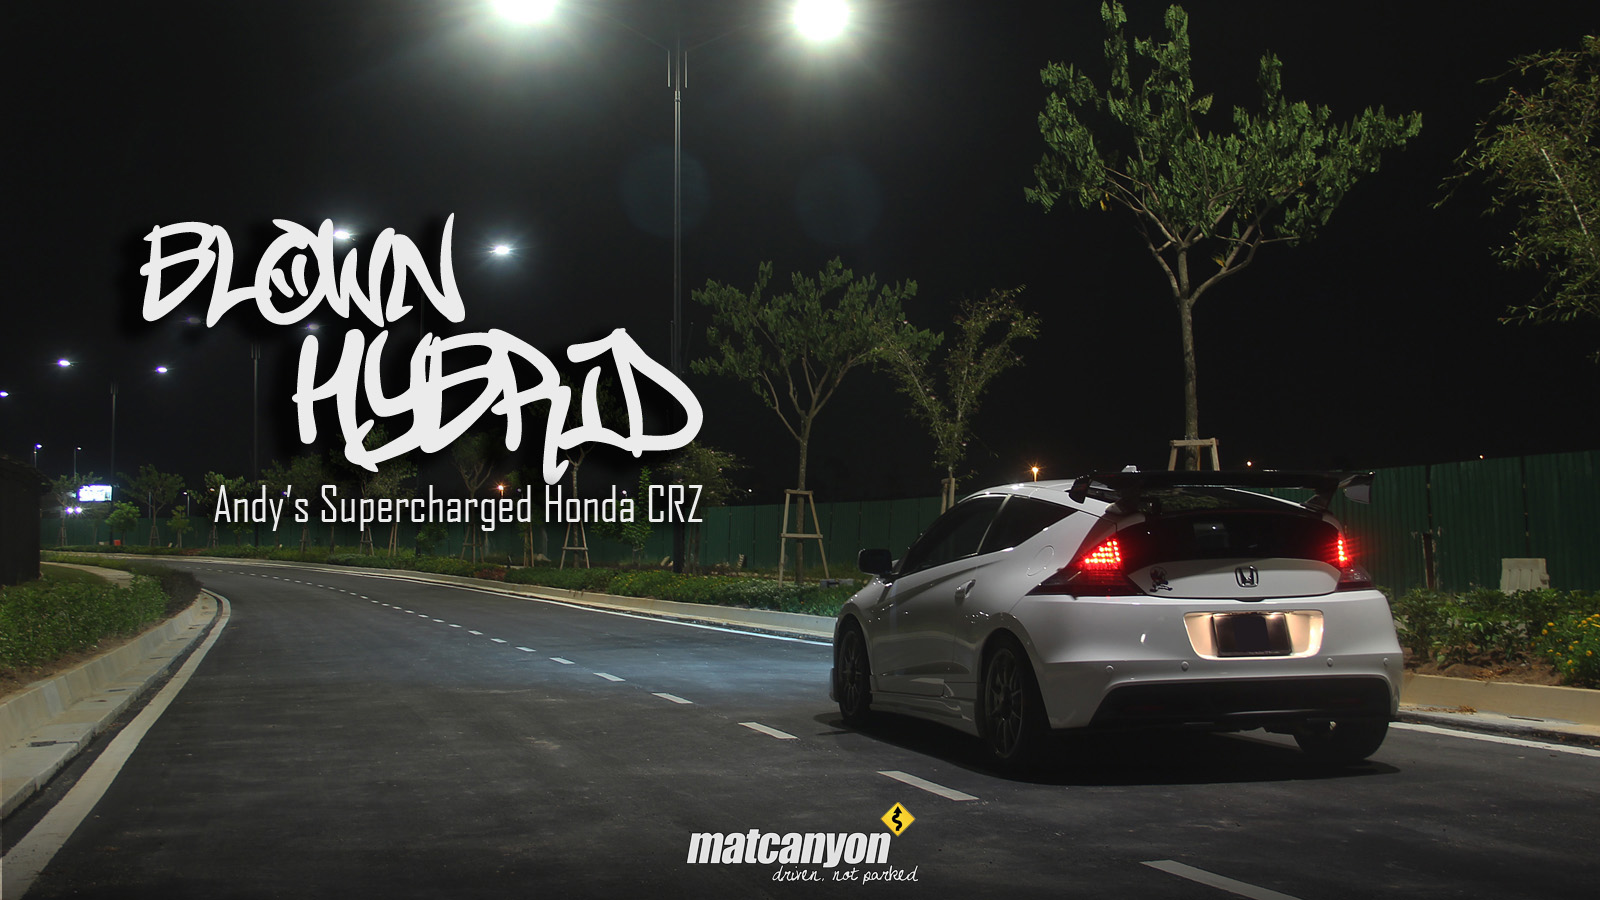 Mat Canyon: Blown Hybrid | Andy's Supercharged Honda CRZ